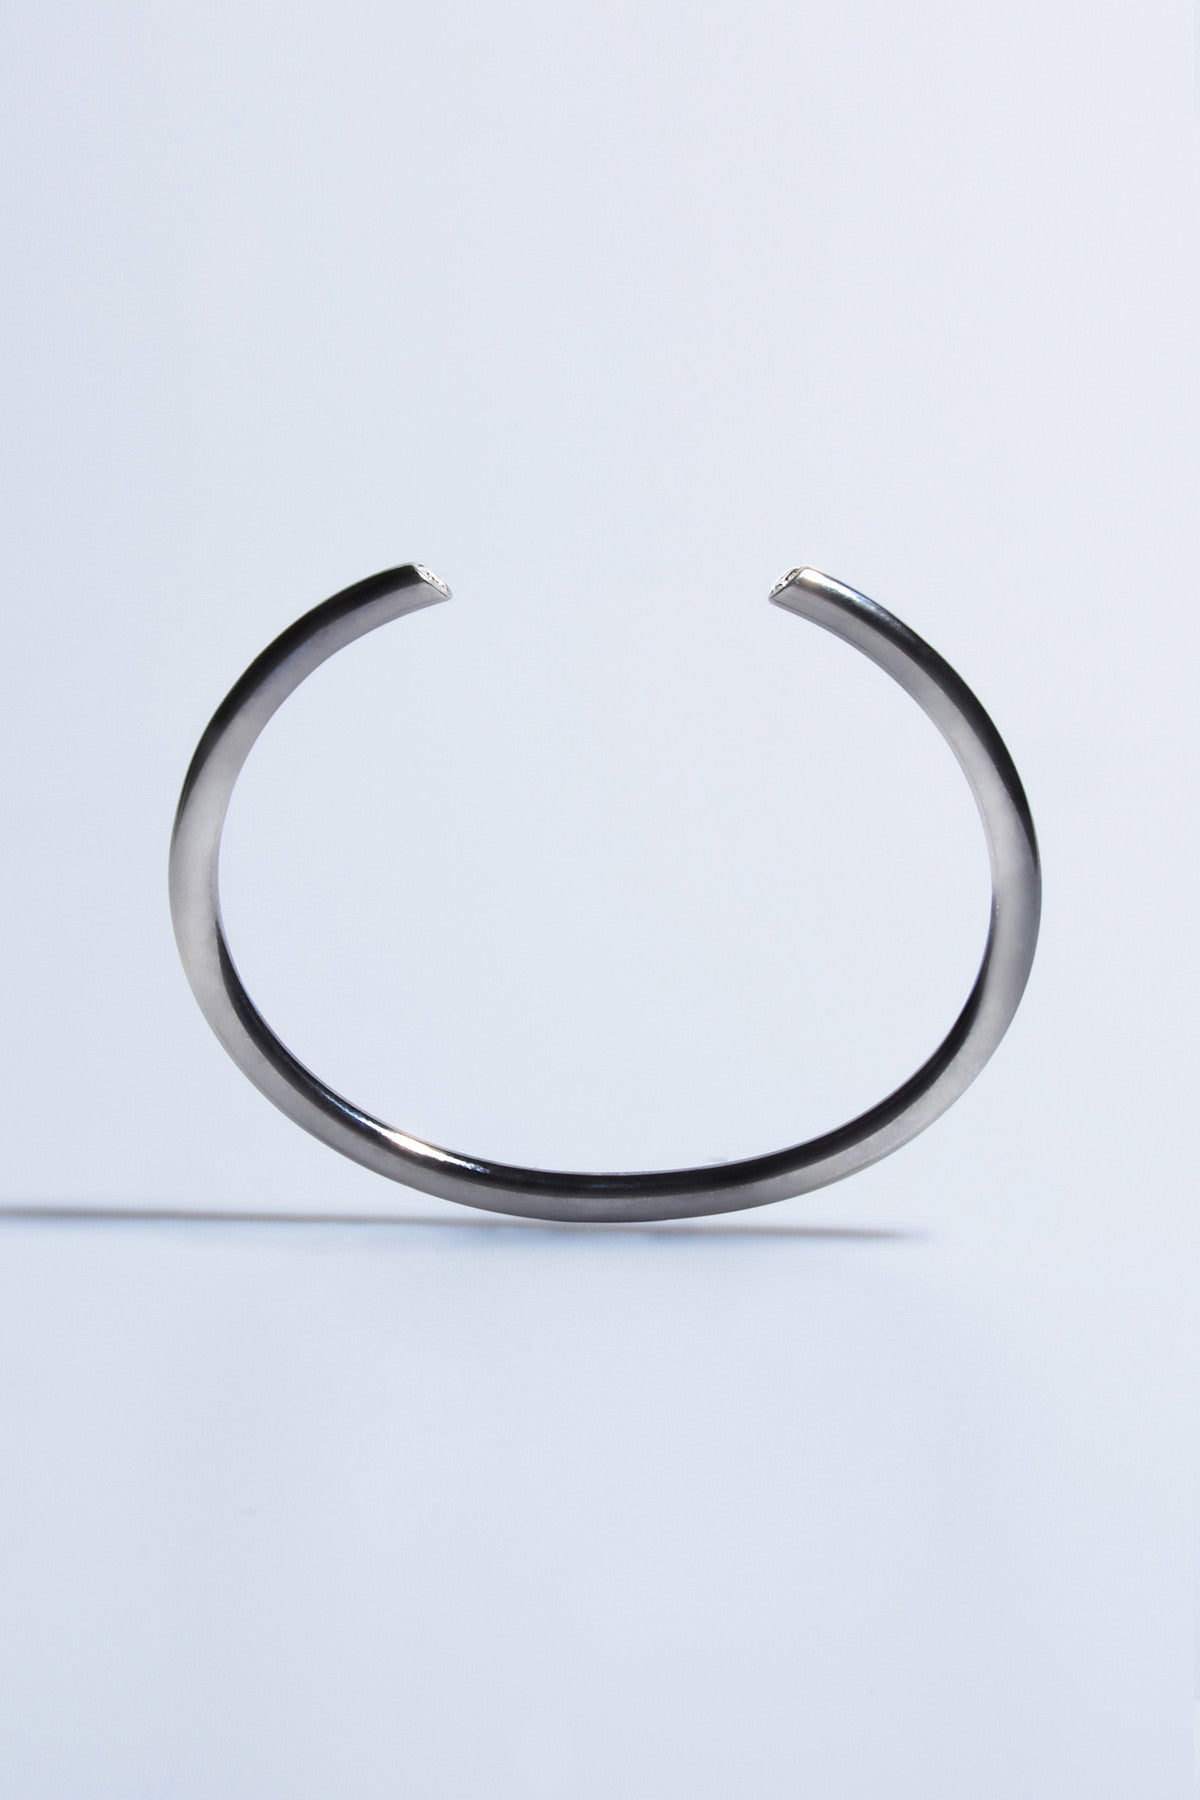 4mm Open Bangle